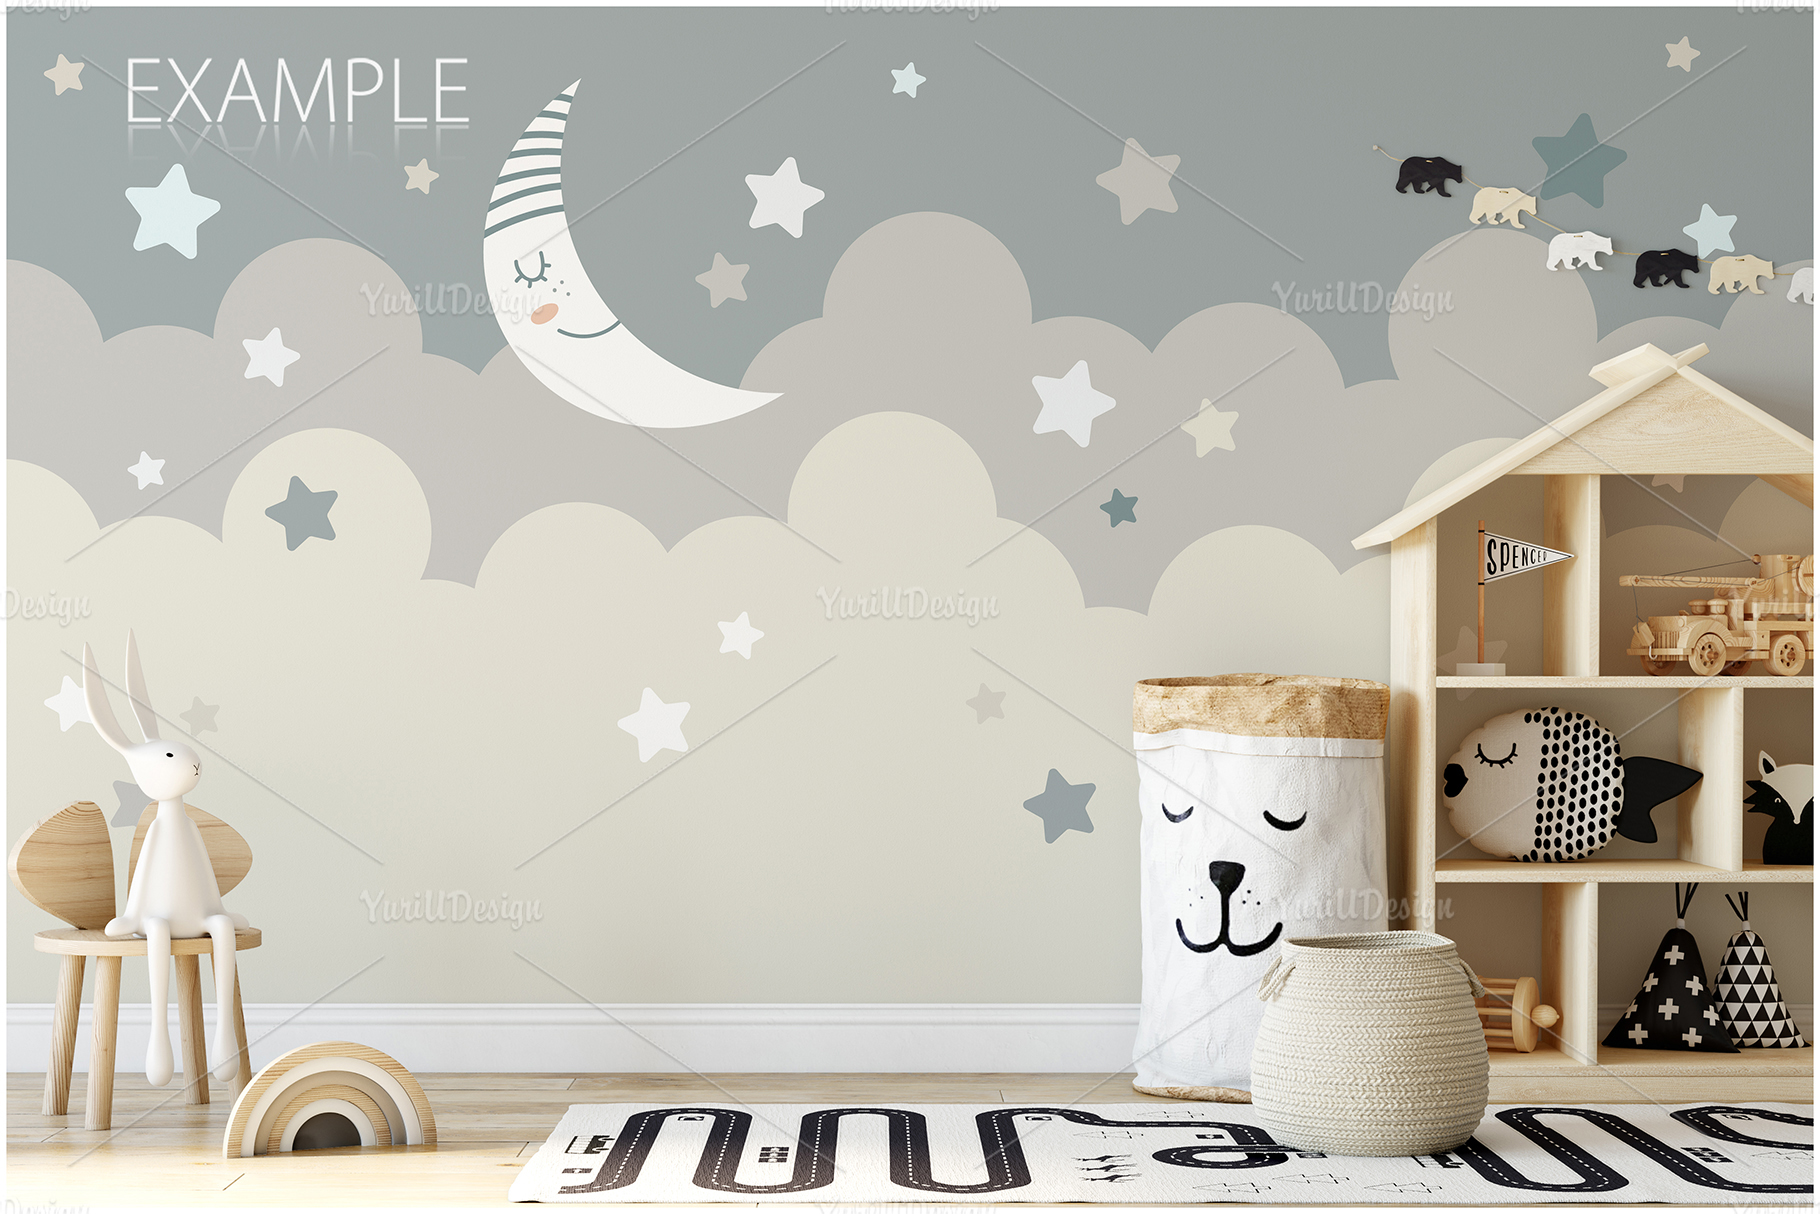 Kids Frames & Wall Mockup Bundle - 5 example image 10